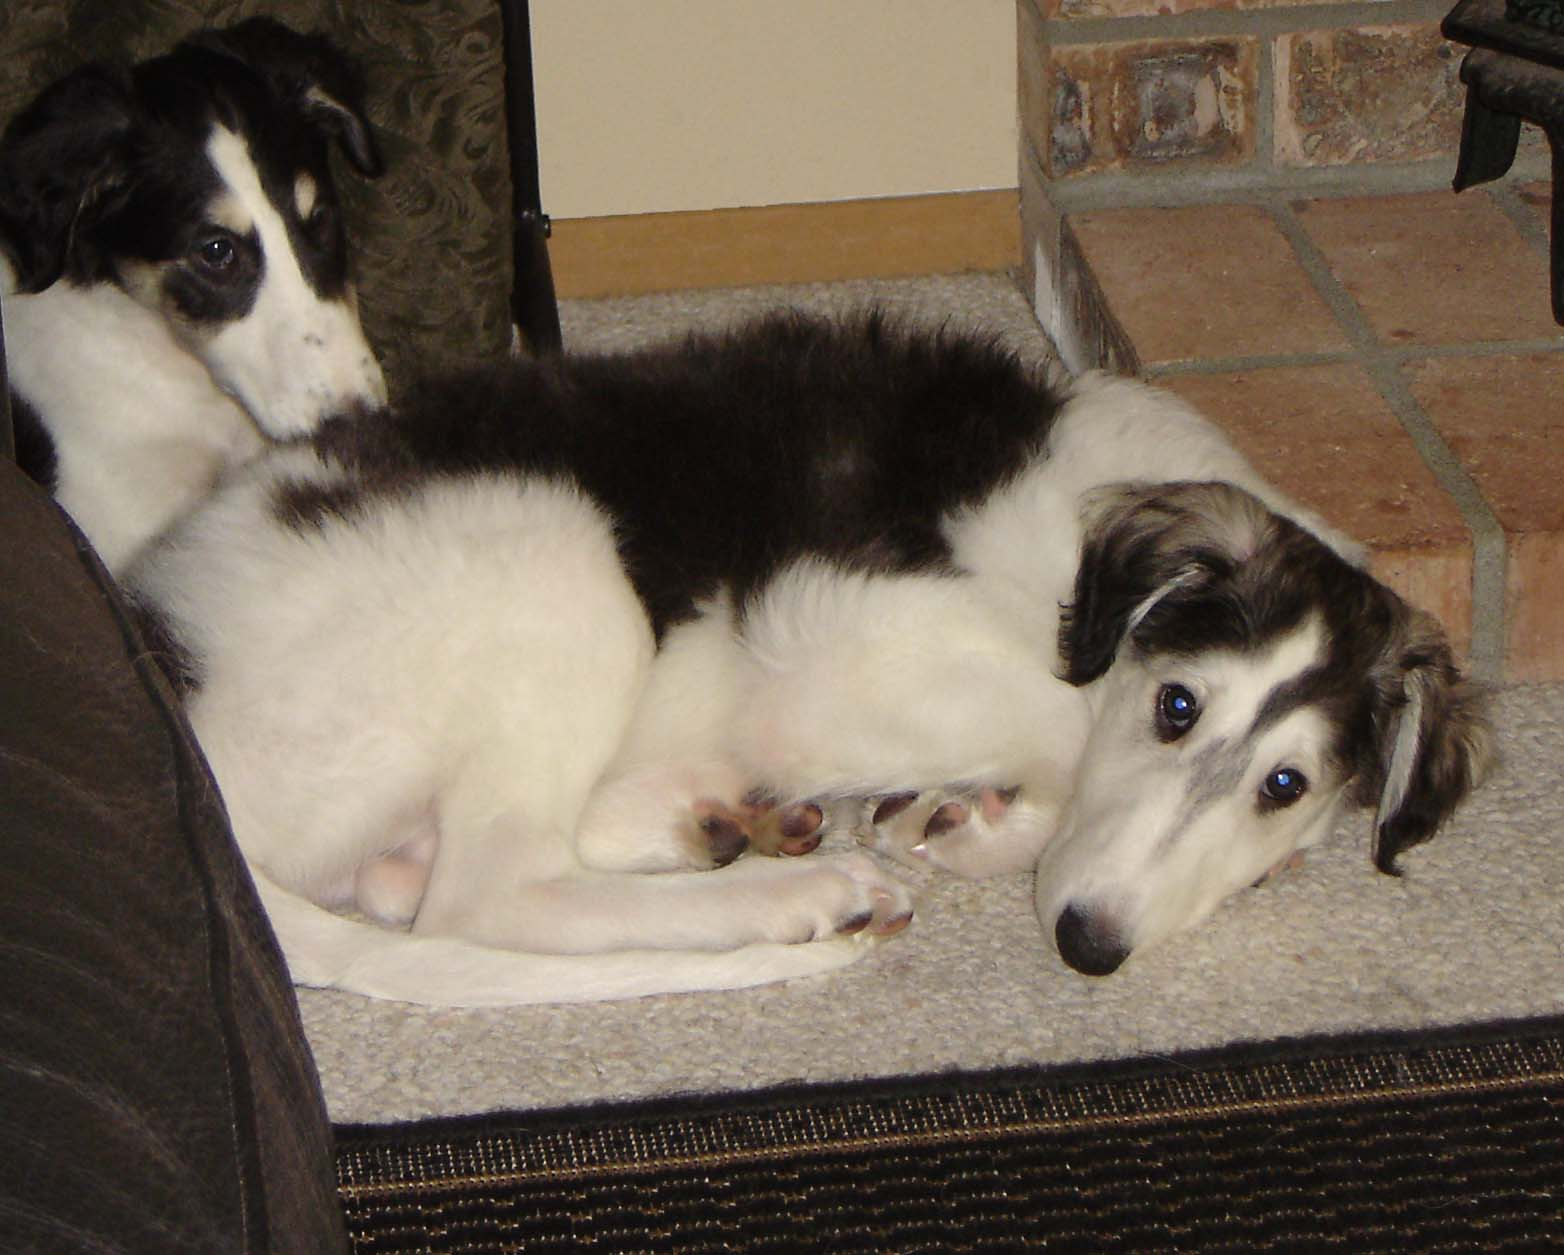 Borzoi puppies snuggling together